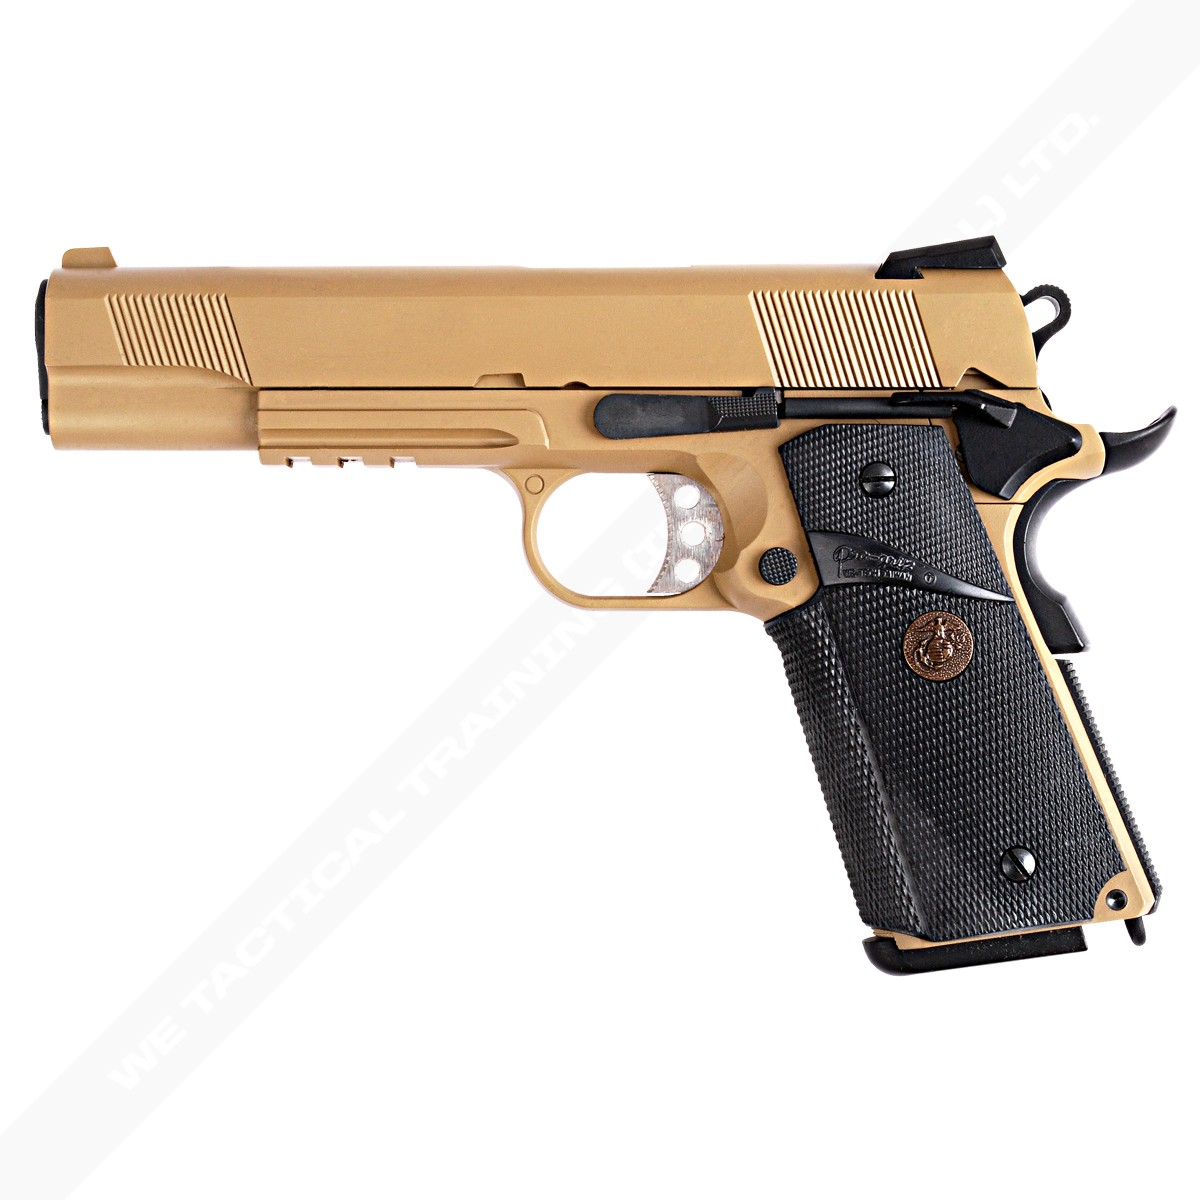 WE 1911 / MEU Railed Full Metal Gas Blowback Pistol - Tan